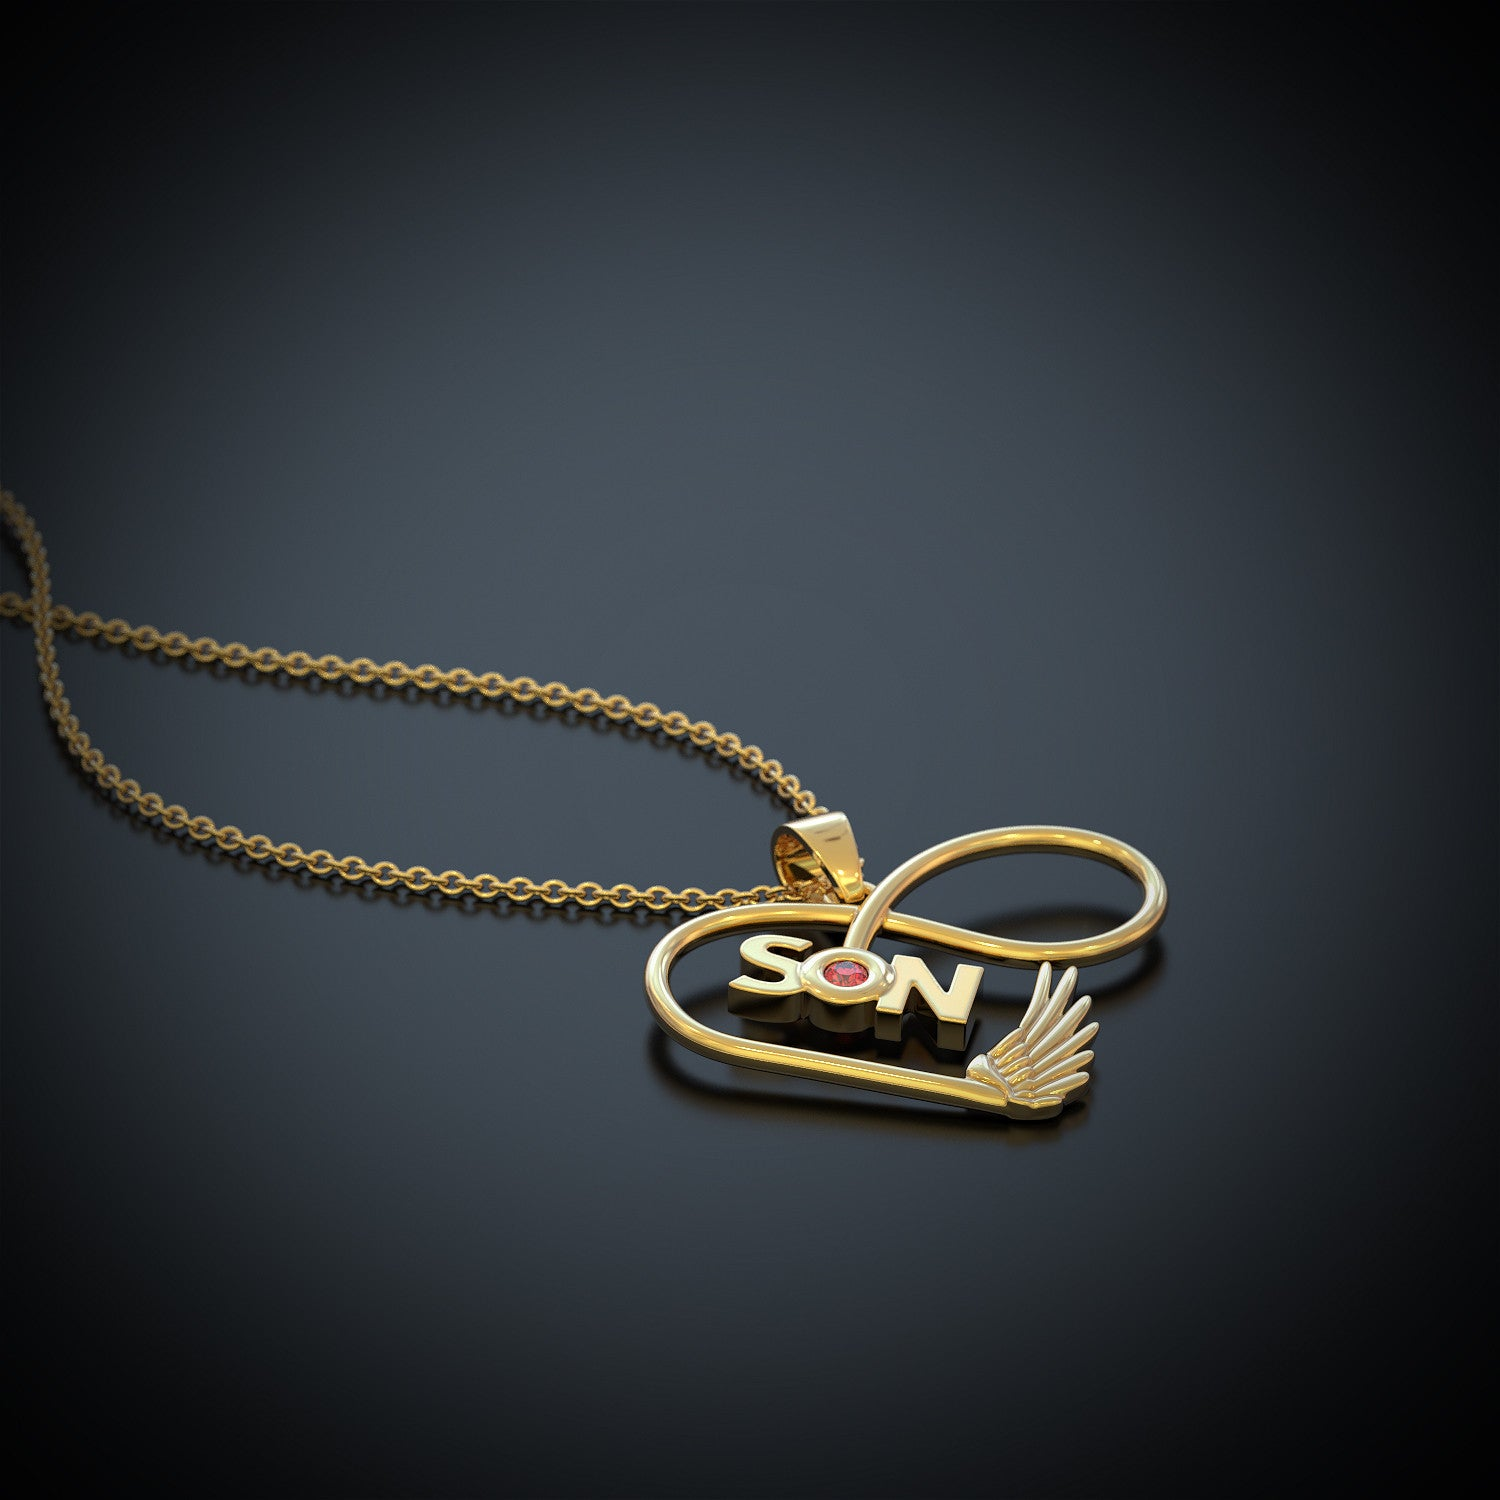 Son Infinity Birthstone Necklace